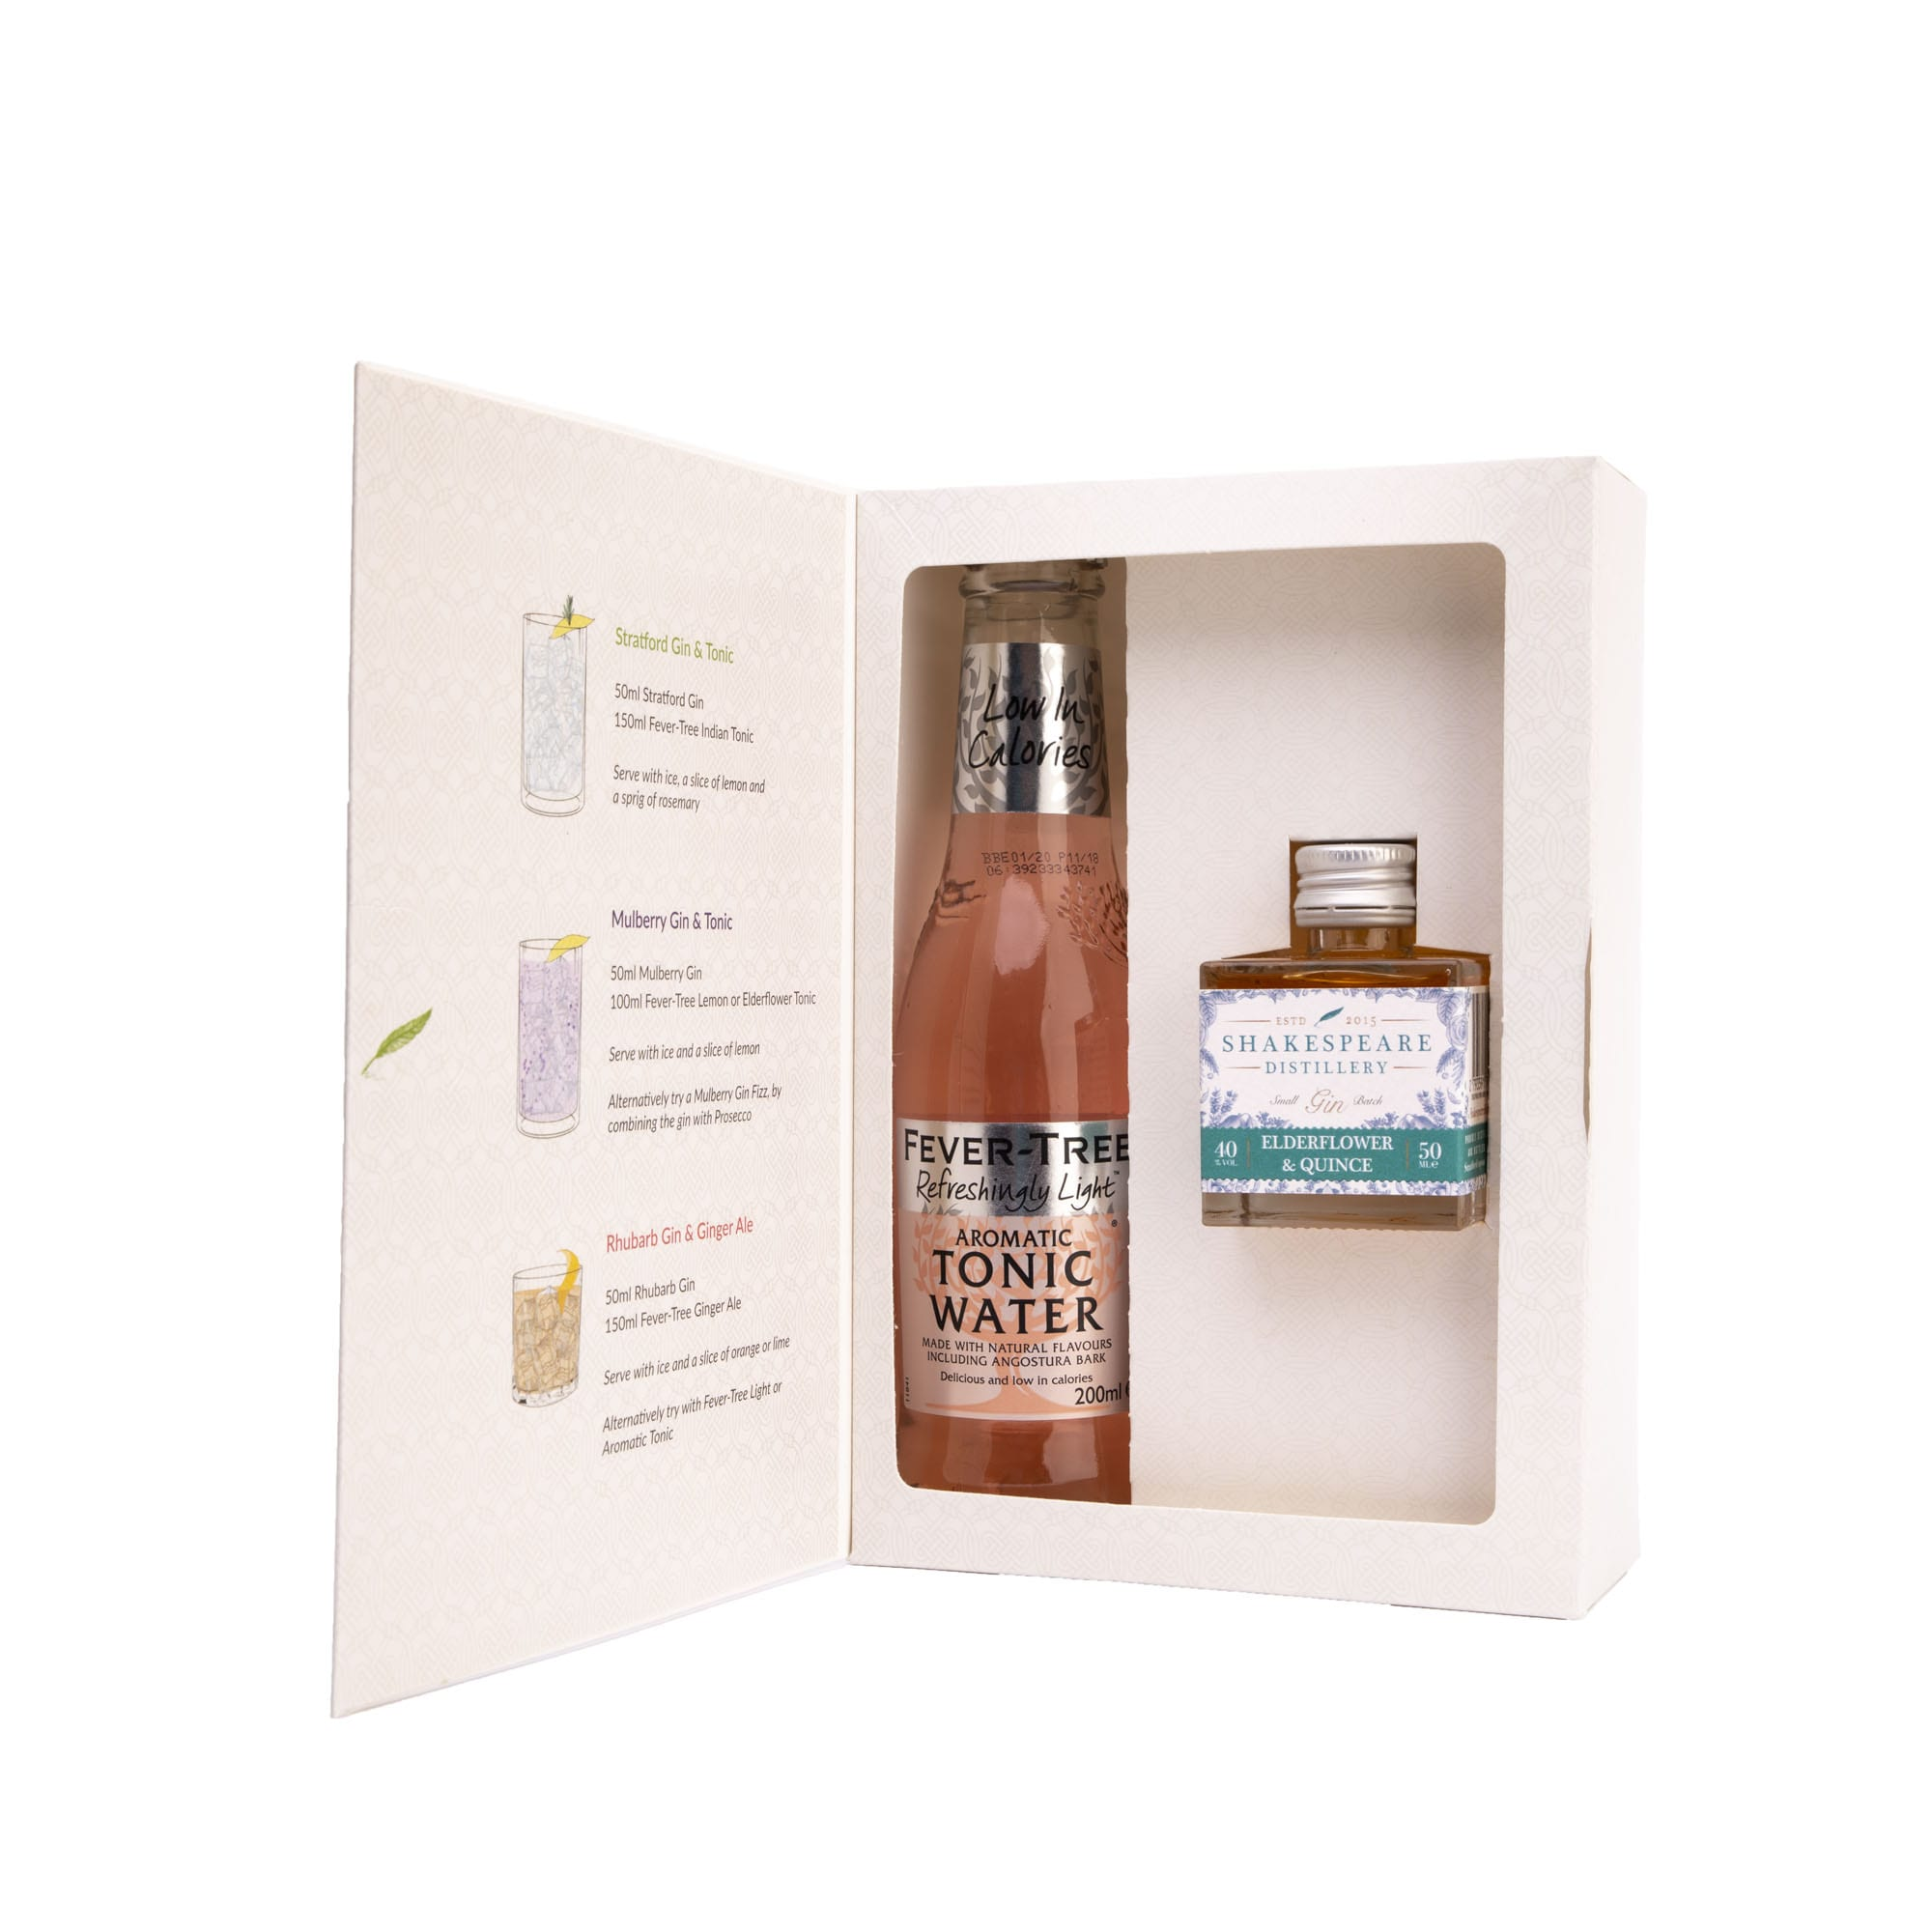 Elderflower and Quince and Tonic Gift Set